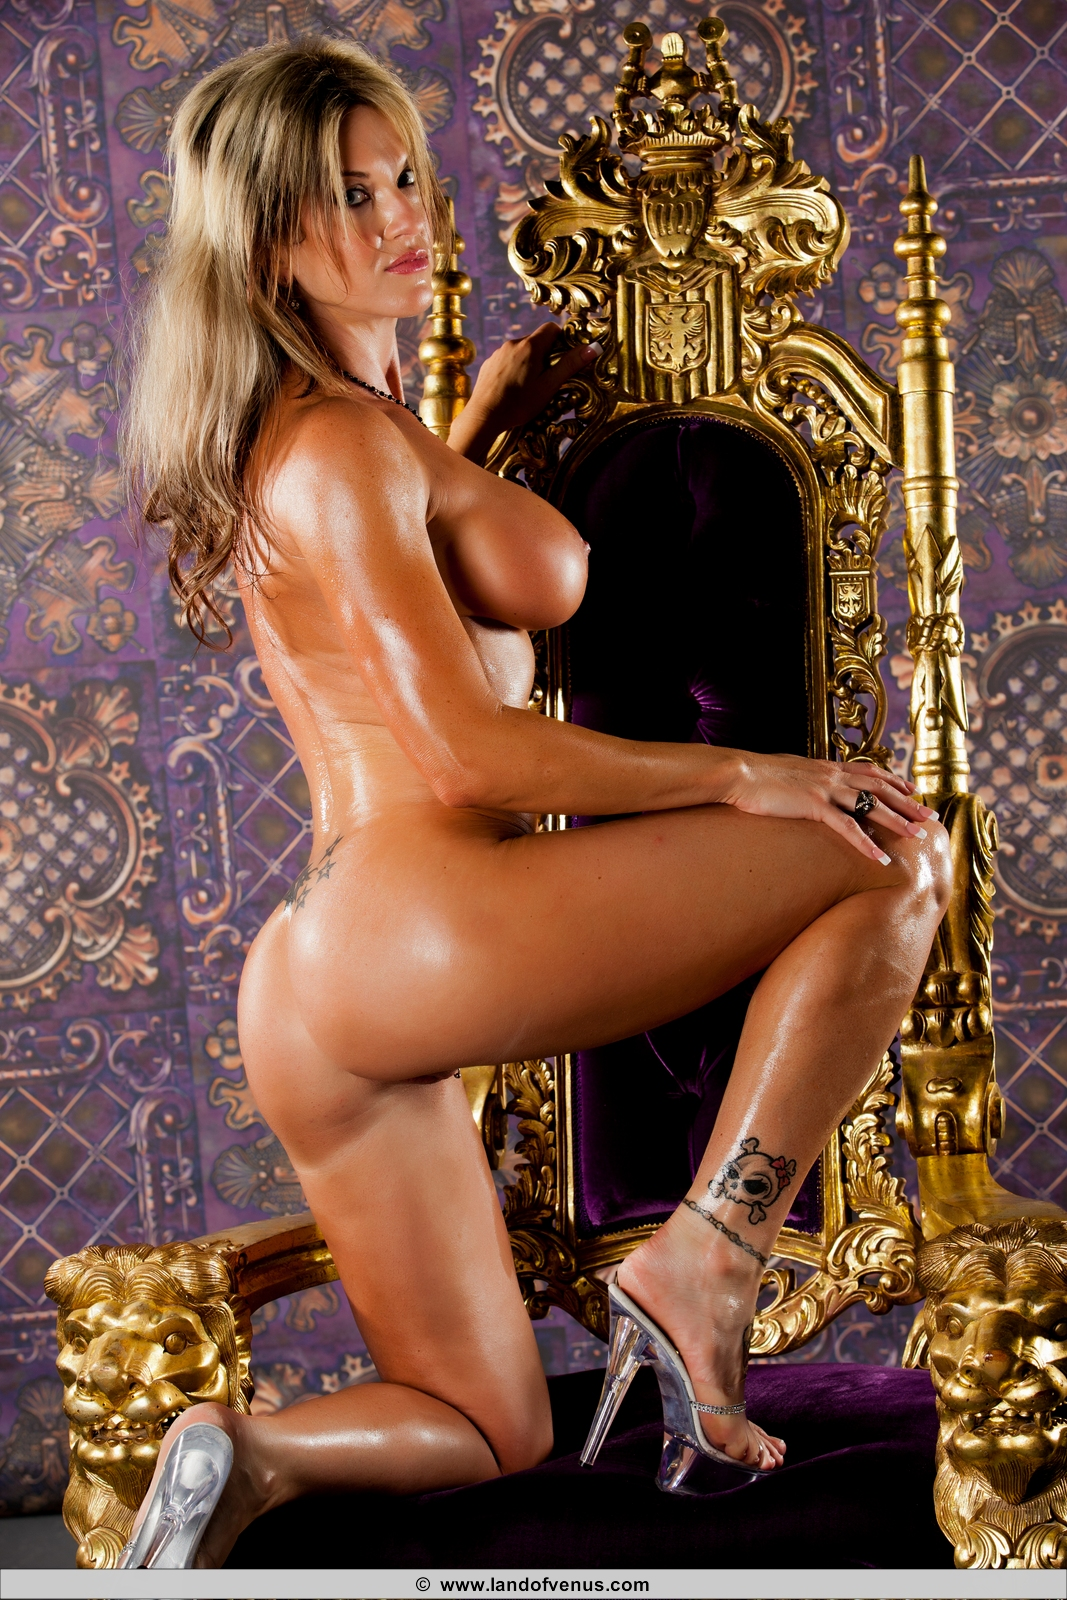 Share your asian female bodybuilder venus nude join